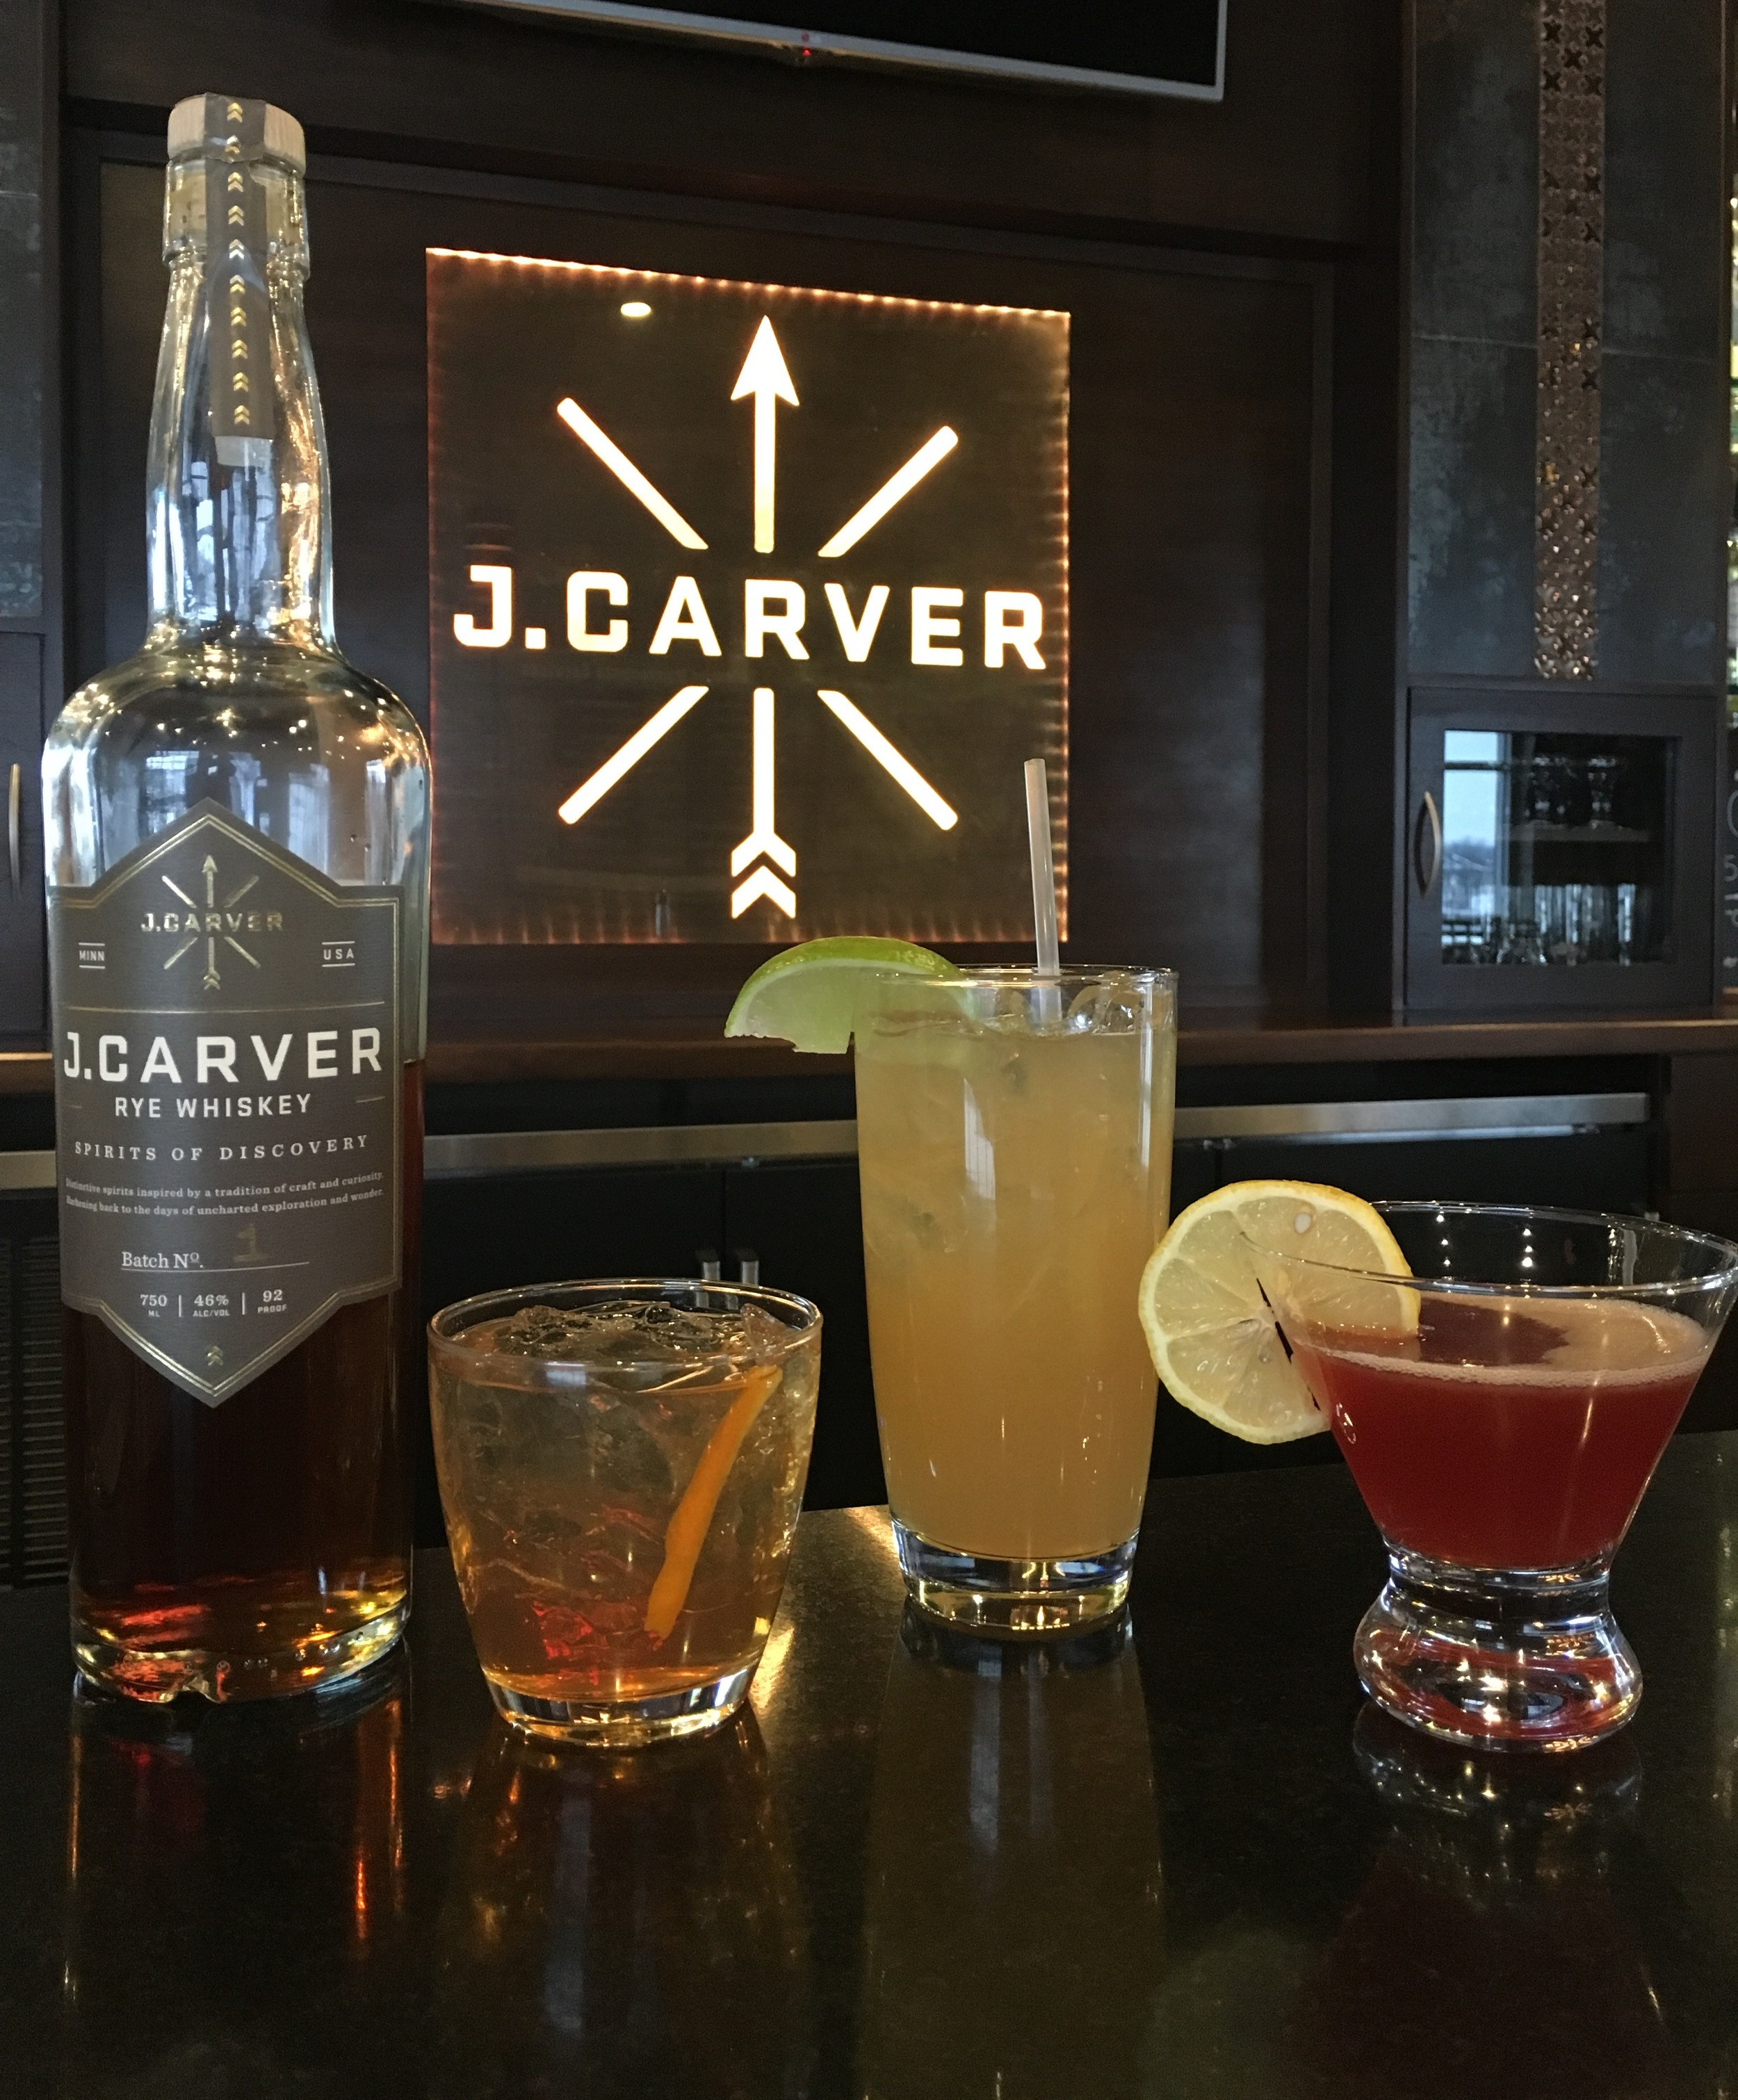 J. Carver Rye Whiskey Specialty Cocktails available in our Cocktail Room